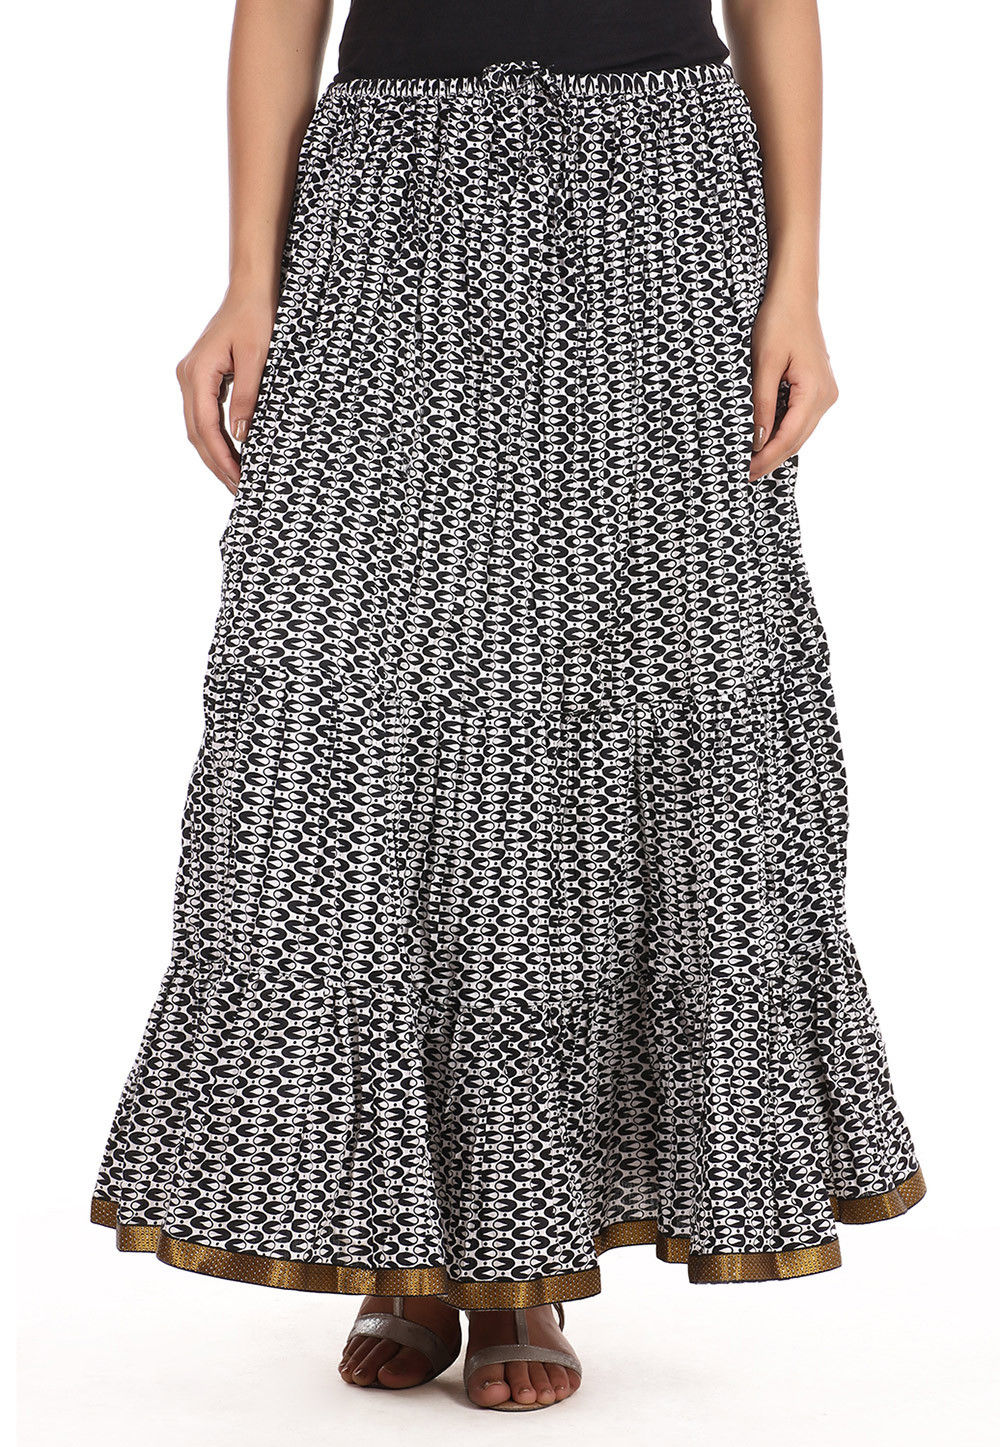 Printed Cotton Long Skirt in White and Black